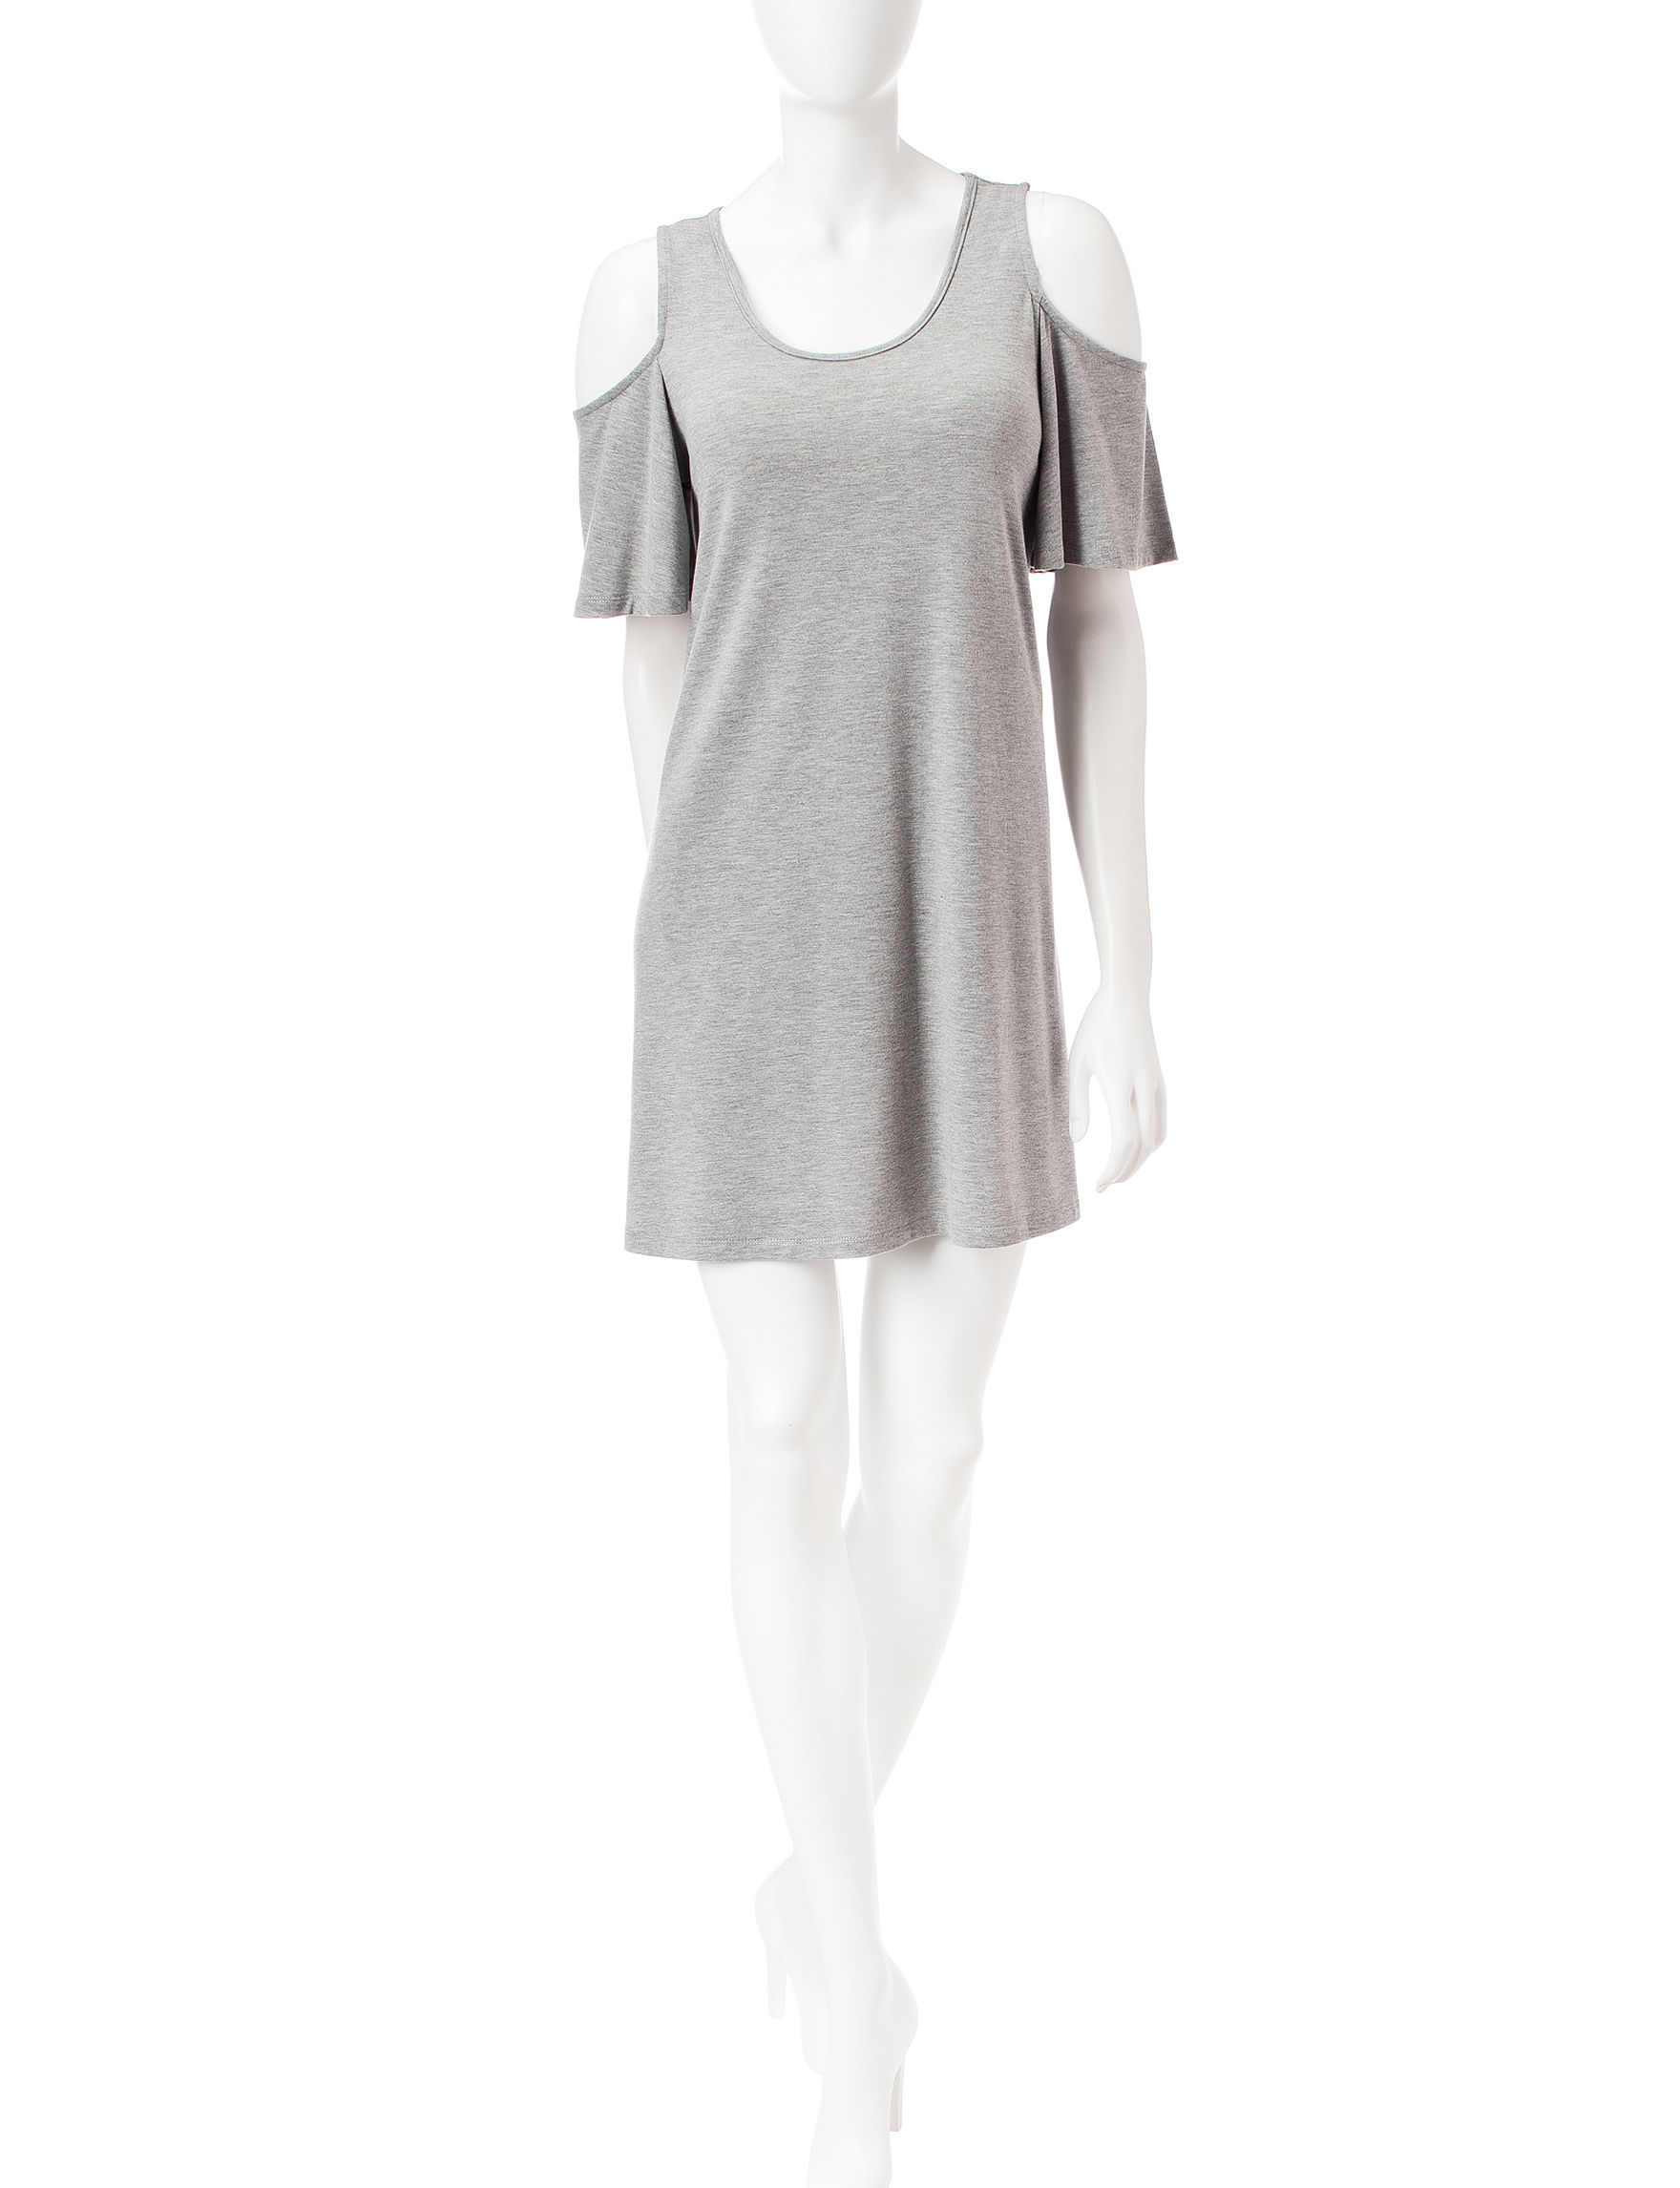 Wishful Park Heather Grey Everyday & Casual Shirt Dresses